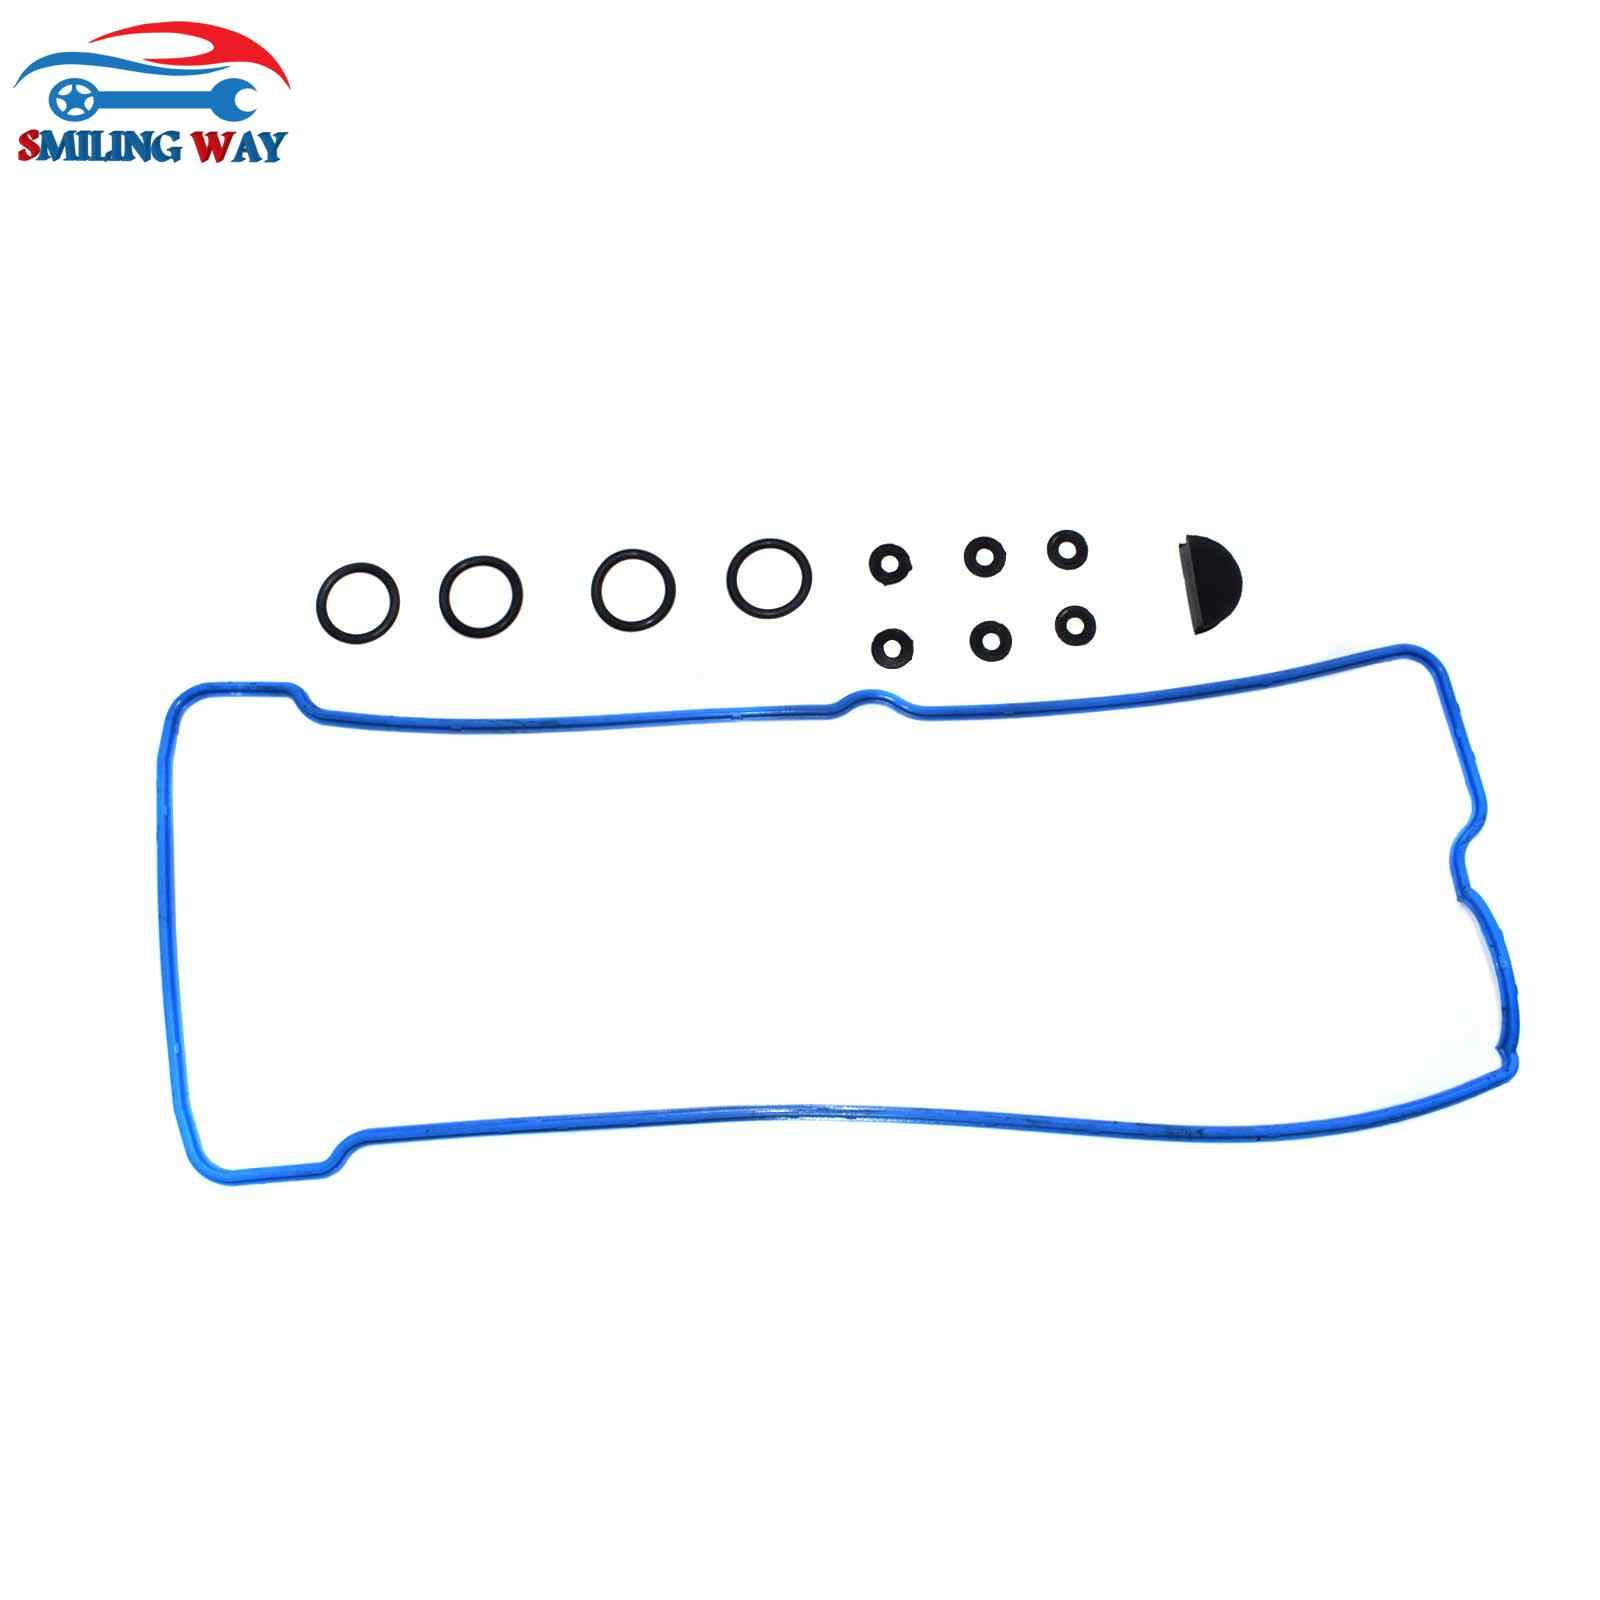 small resolution of  smiling way engine valve cover gasket grommet spark plug tube seal for chevrolet